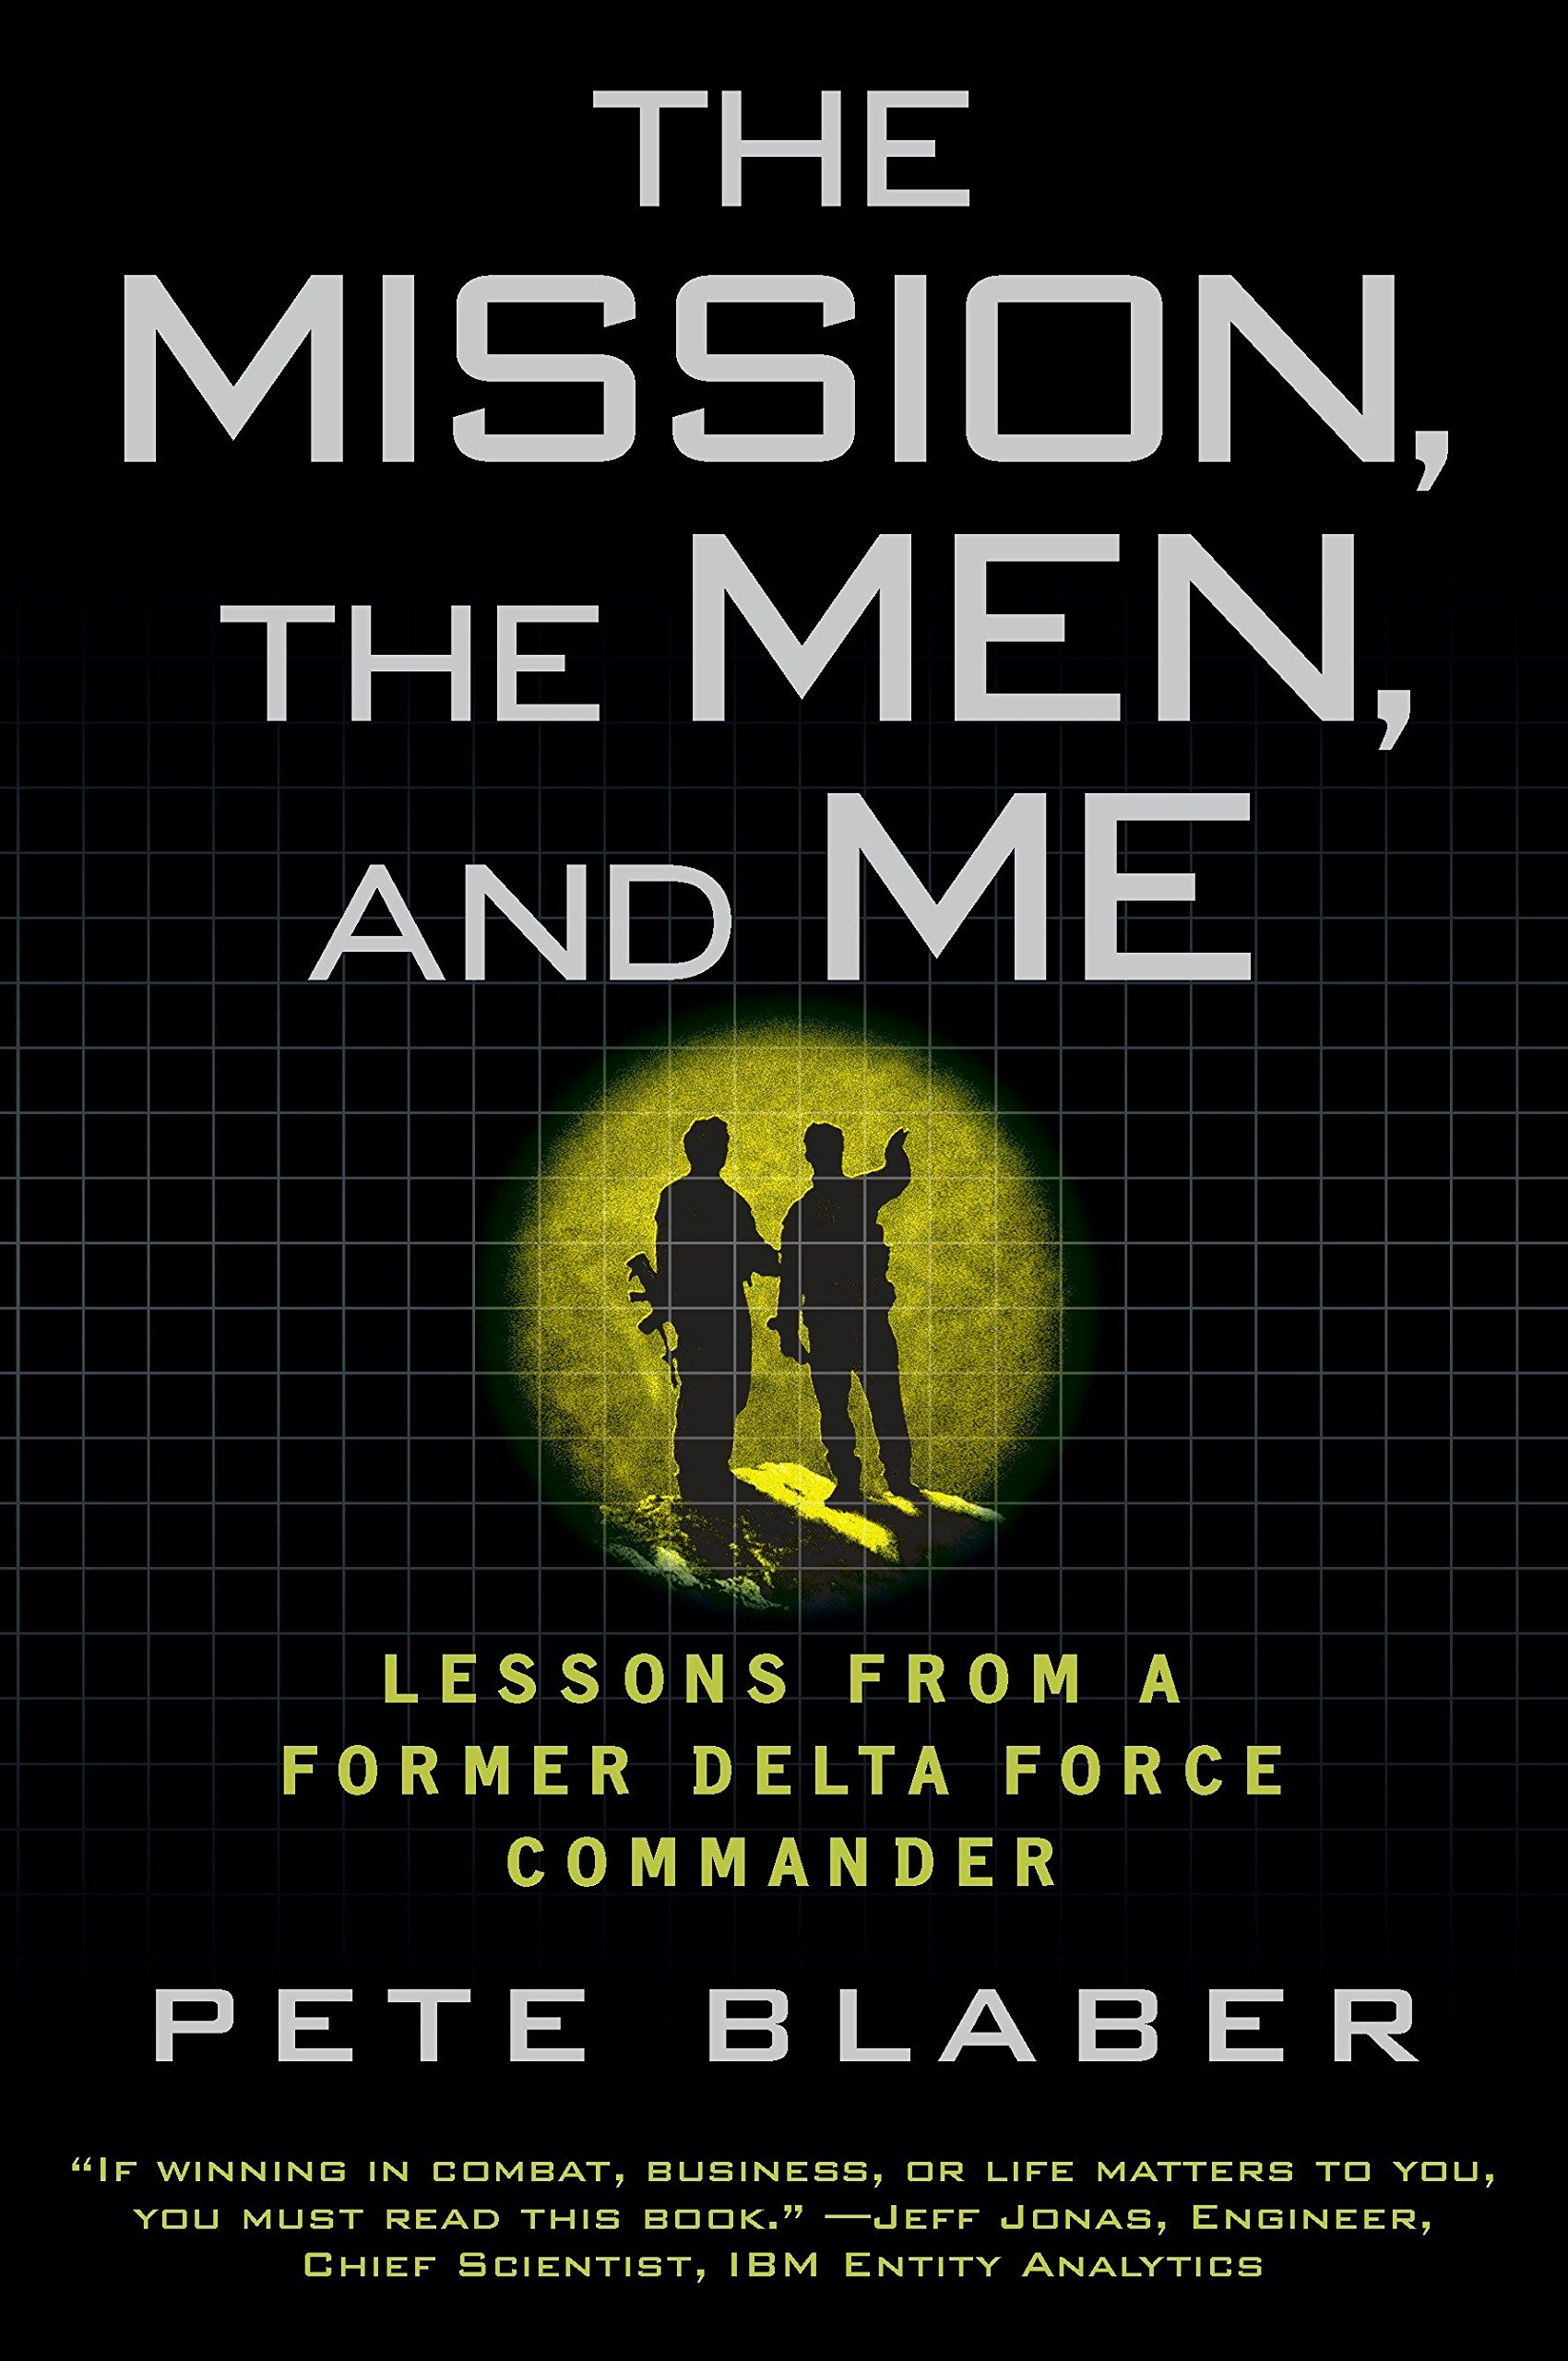 The Mission, the Men, and Me: Lessons from a Former Delta Force Commander: Amazon.es: Pete Blaber: Libros en idiomas extranjeros